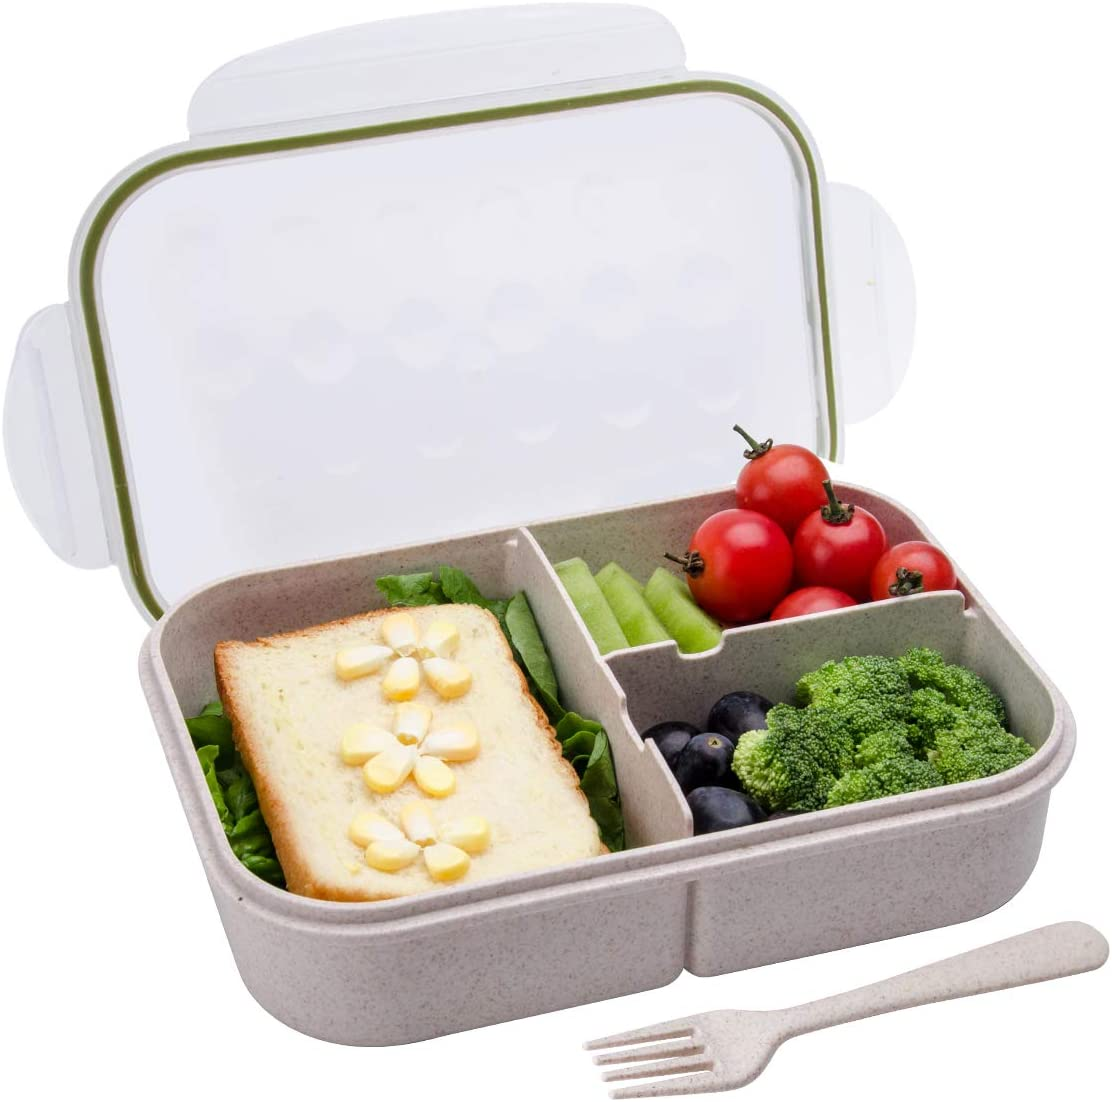 Bento Max 56% OFF Box Lunch for Kids Adults and C Direct sale of manufacturer Leakproof